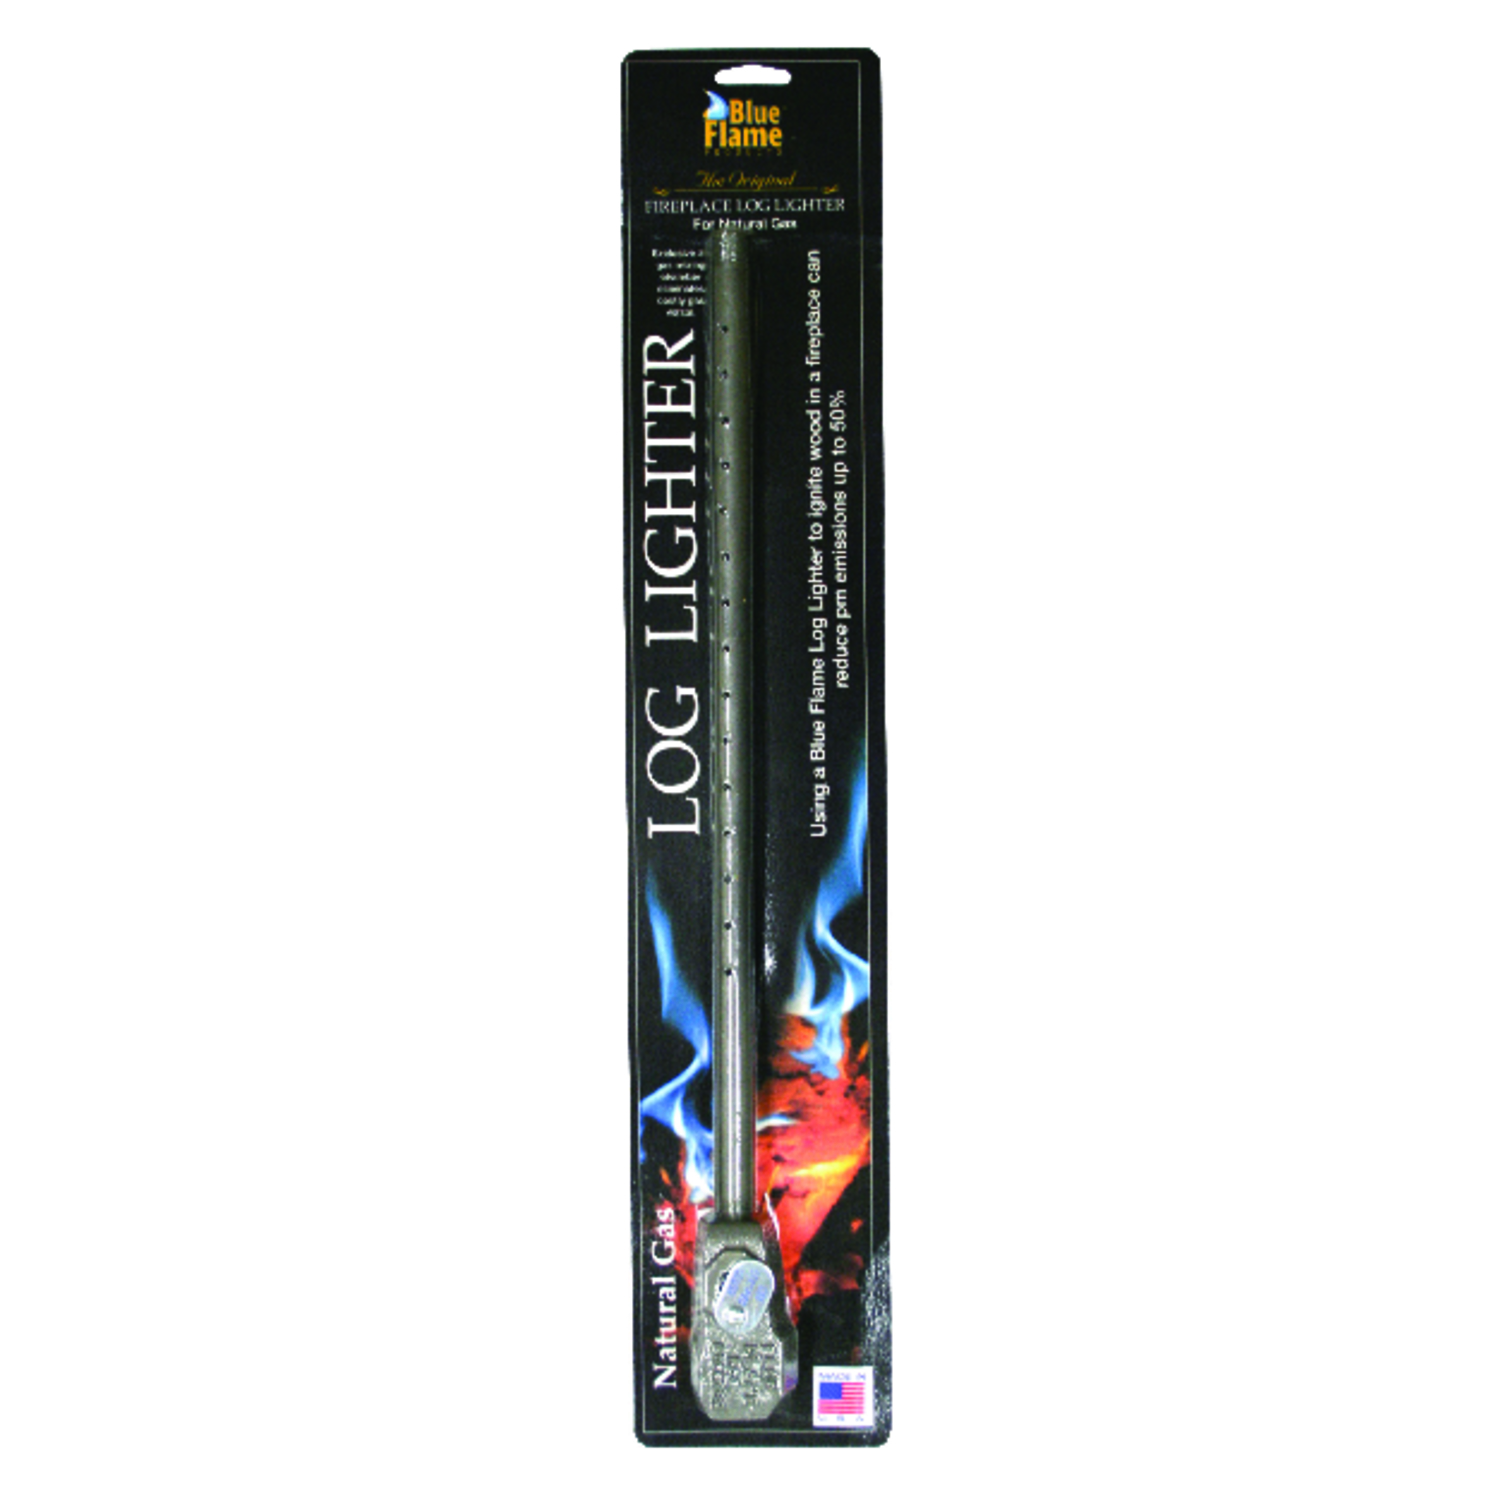 Blue Flame  0.5 in. Black  Log Lighter  Steel  1 pc. 6 in. L Strike Anywhere